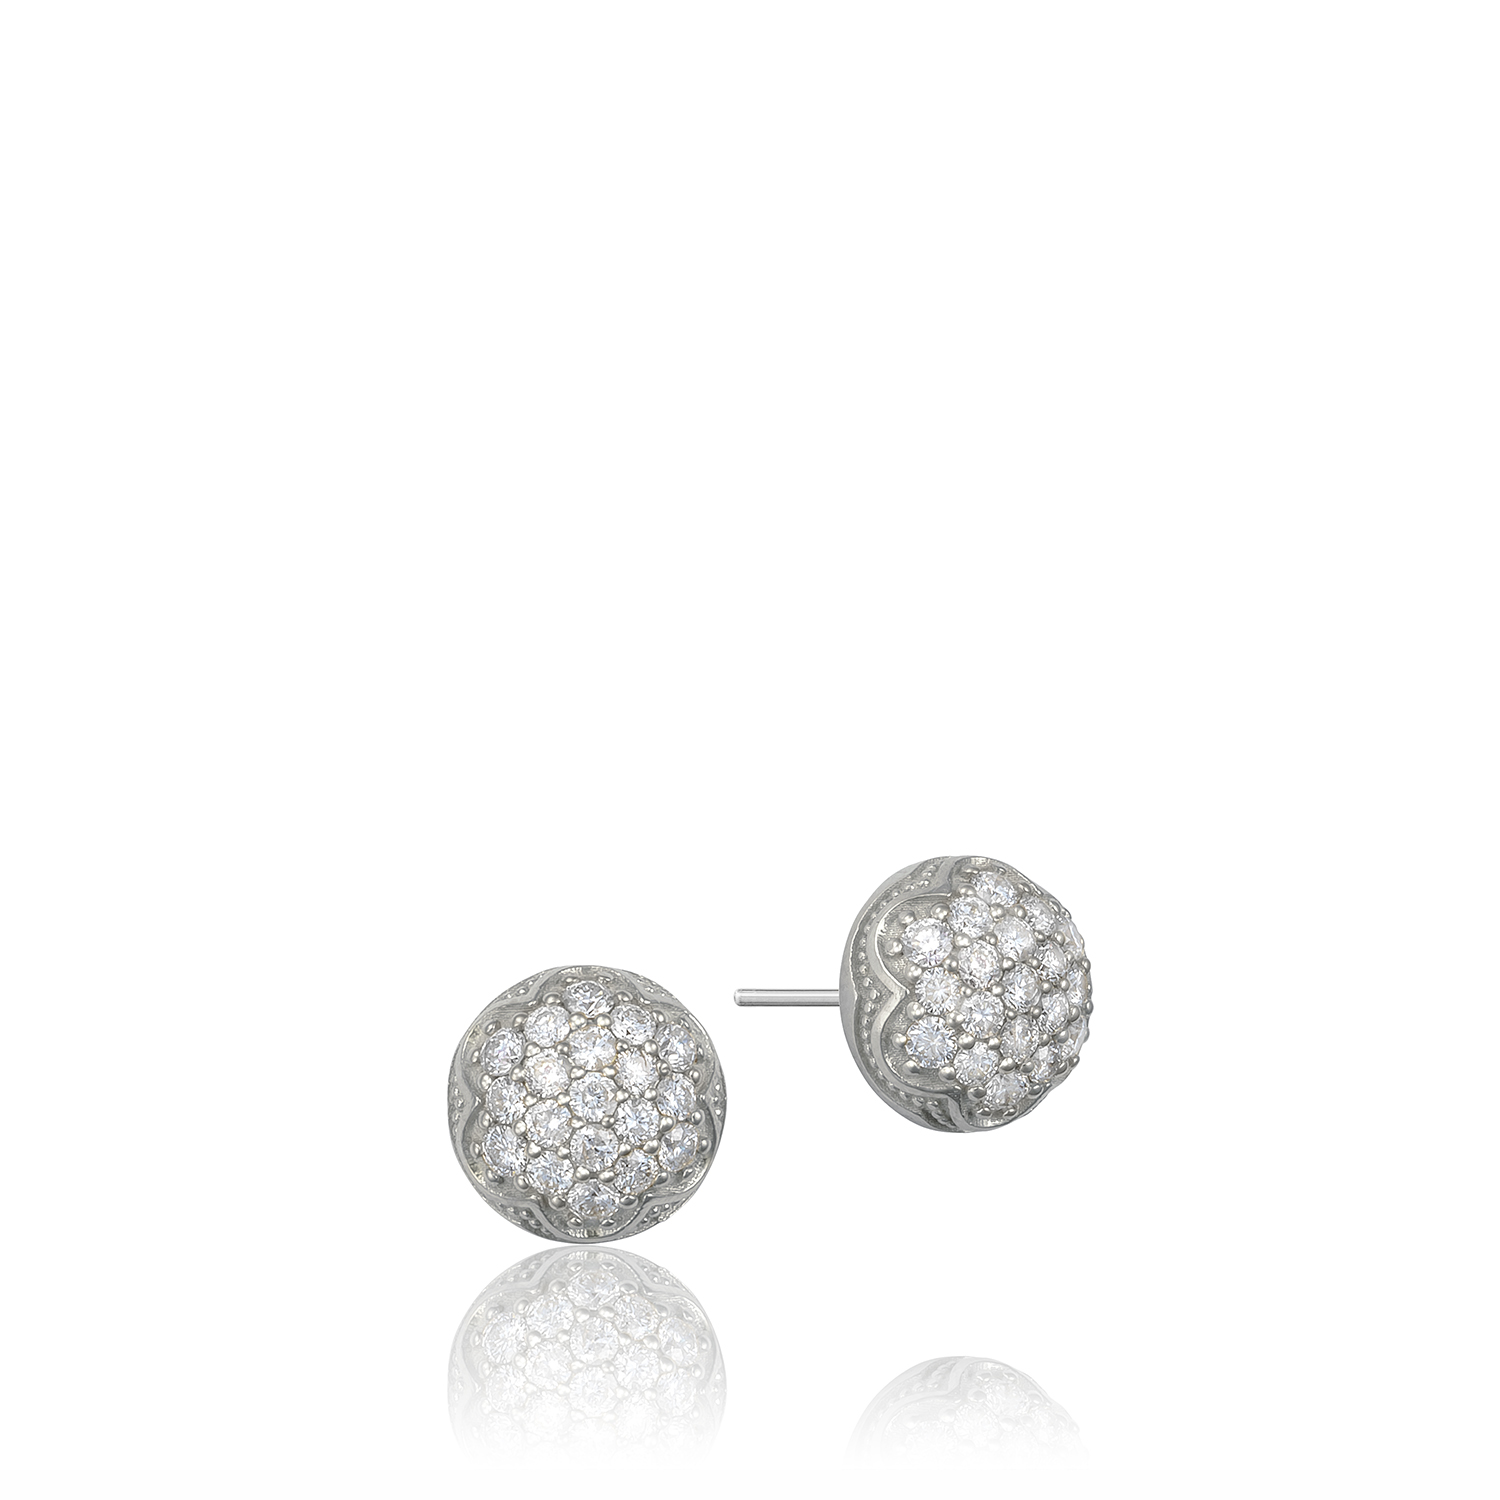 Tacori:  Sterling Silver Engraved Stud Earrings With 0.80Tw Round Diamonds Style Name: Sonoma Mist- Dewdrop Stud